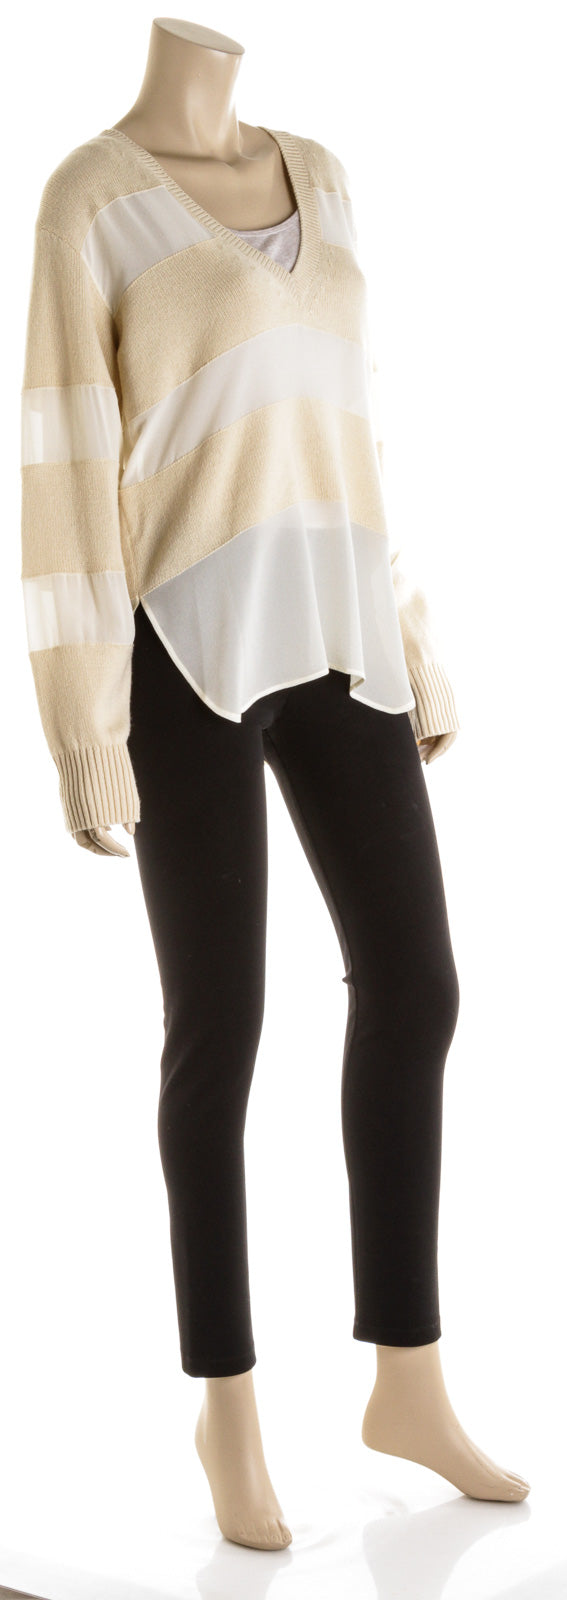 Chloe Silk & Knit Cream & White Stripe Long Sleeve Sweater ( Medium )